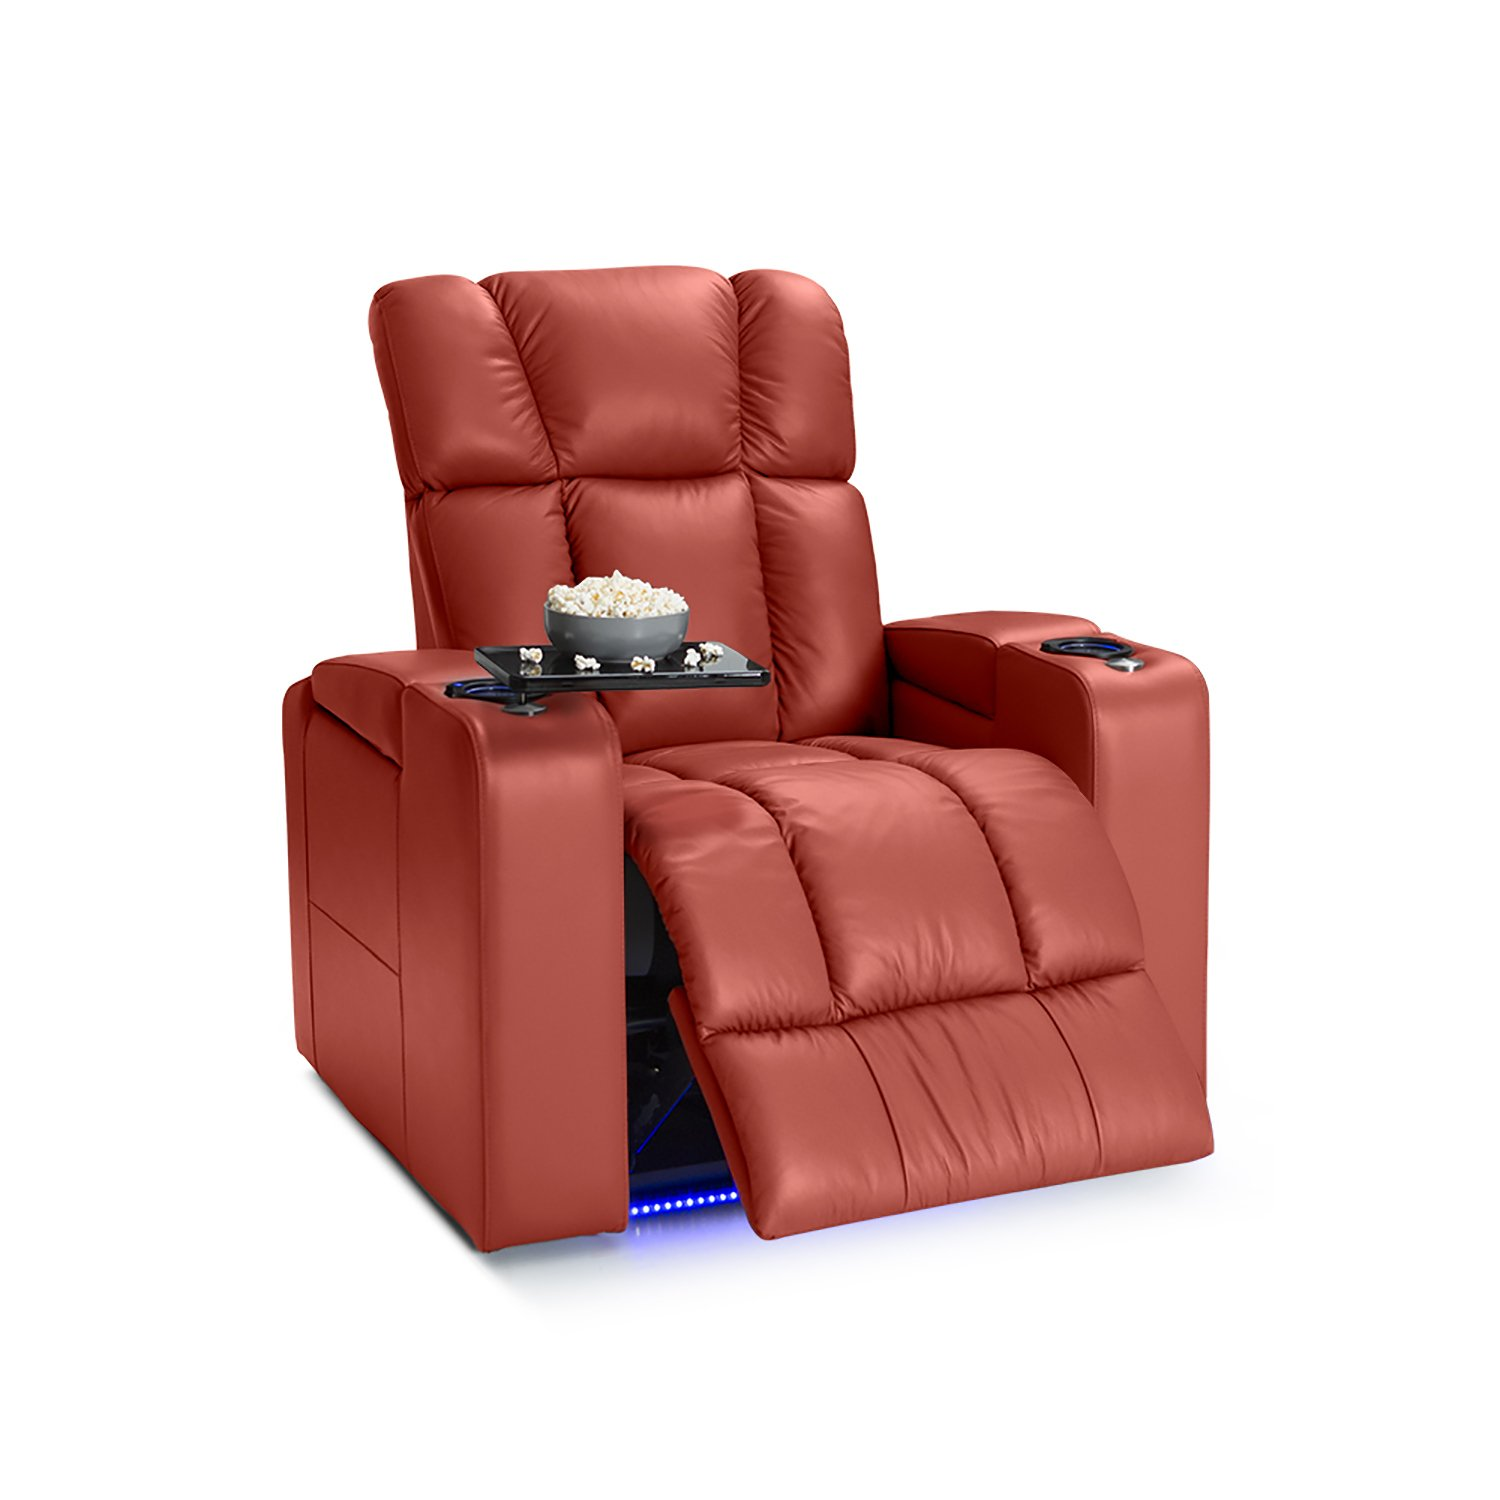 Palliser Collingwood Leather Power Recliner with Adjustable Powered Headrests, In-Arm Storage, and USB Charging, Red